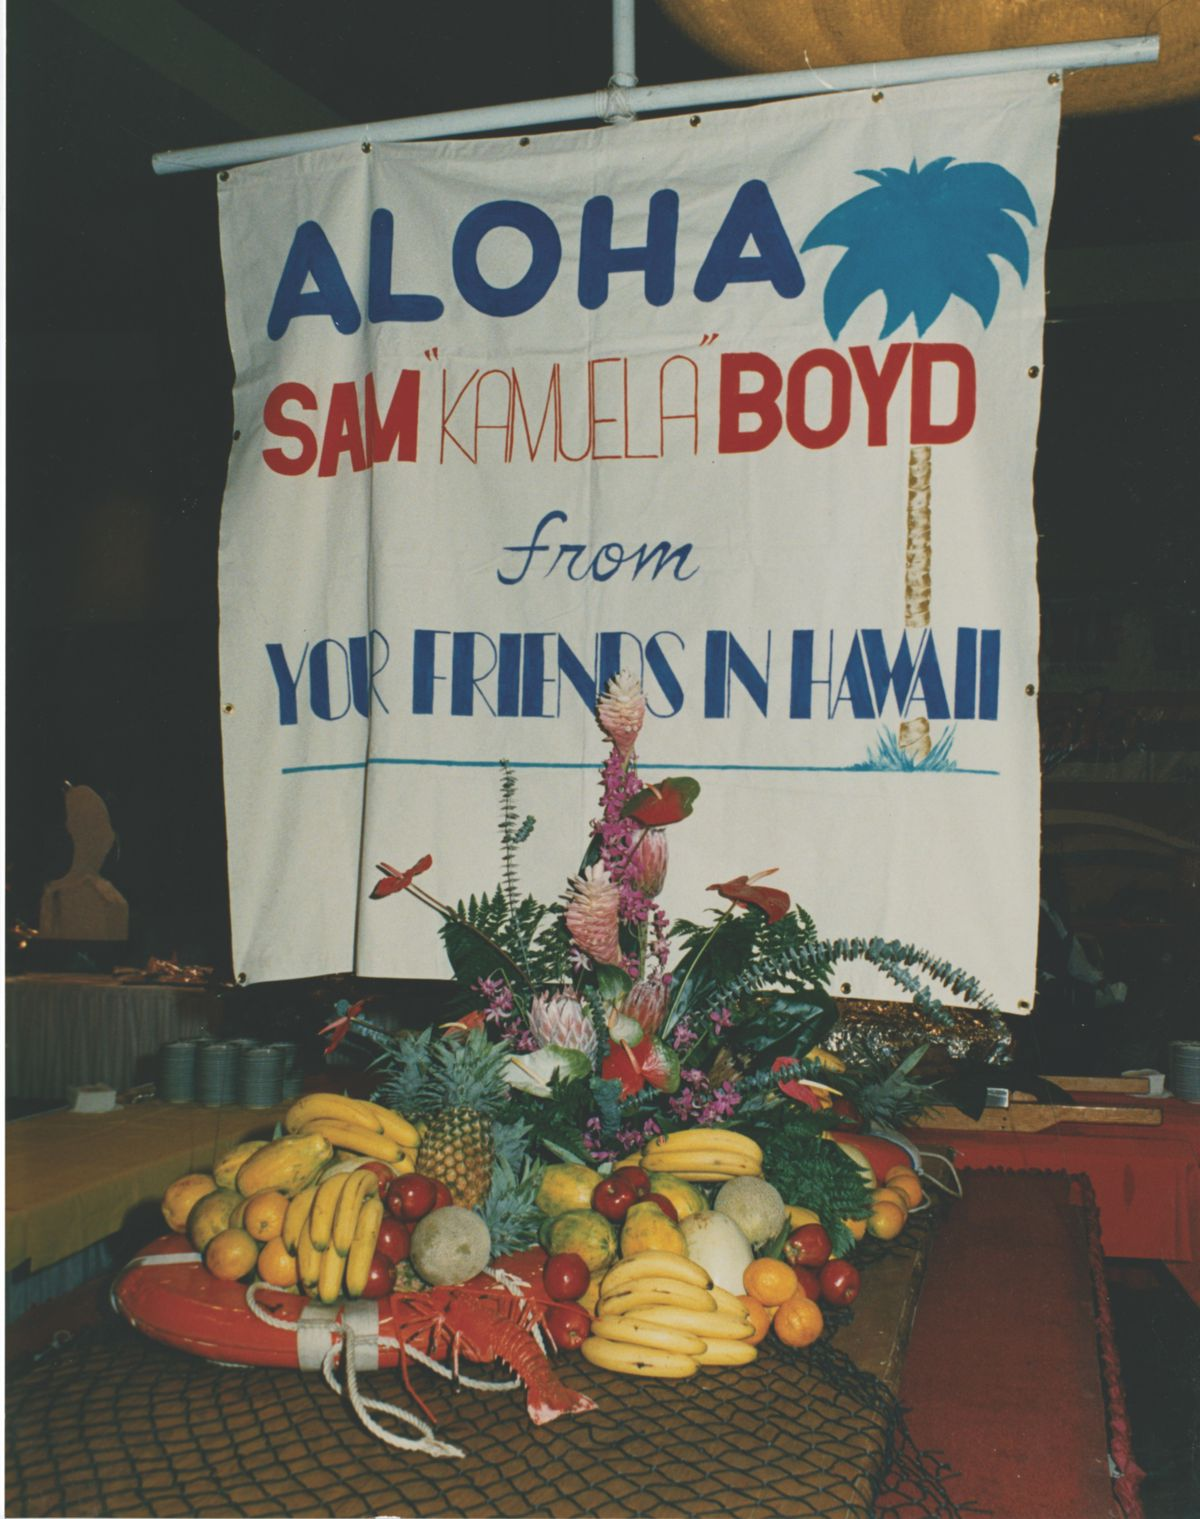 A sign with fruit arranged beneath it.